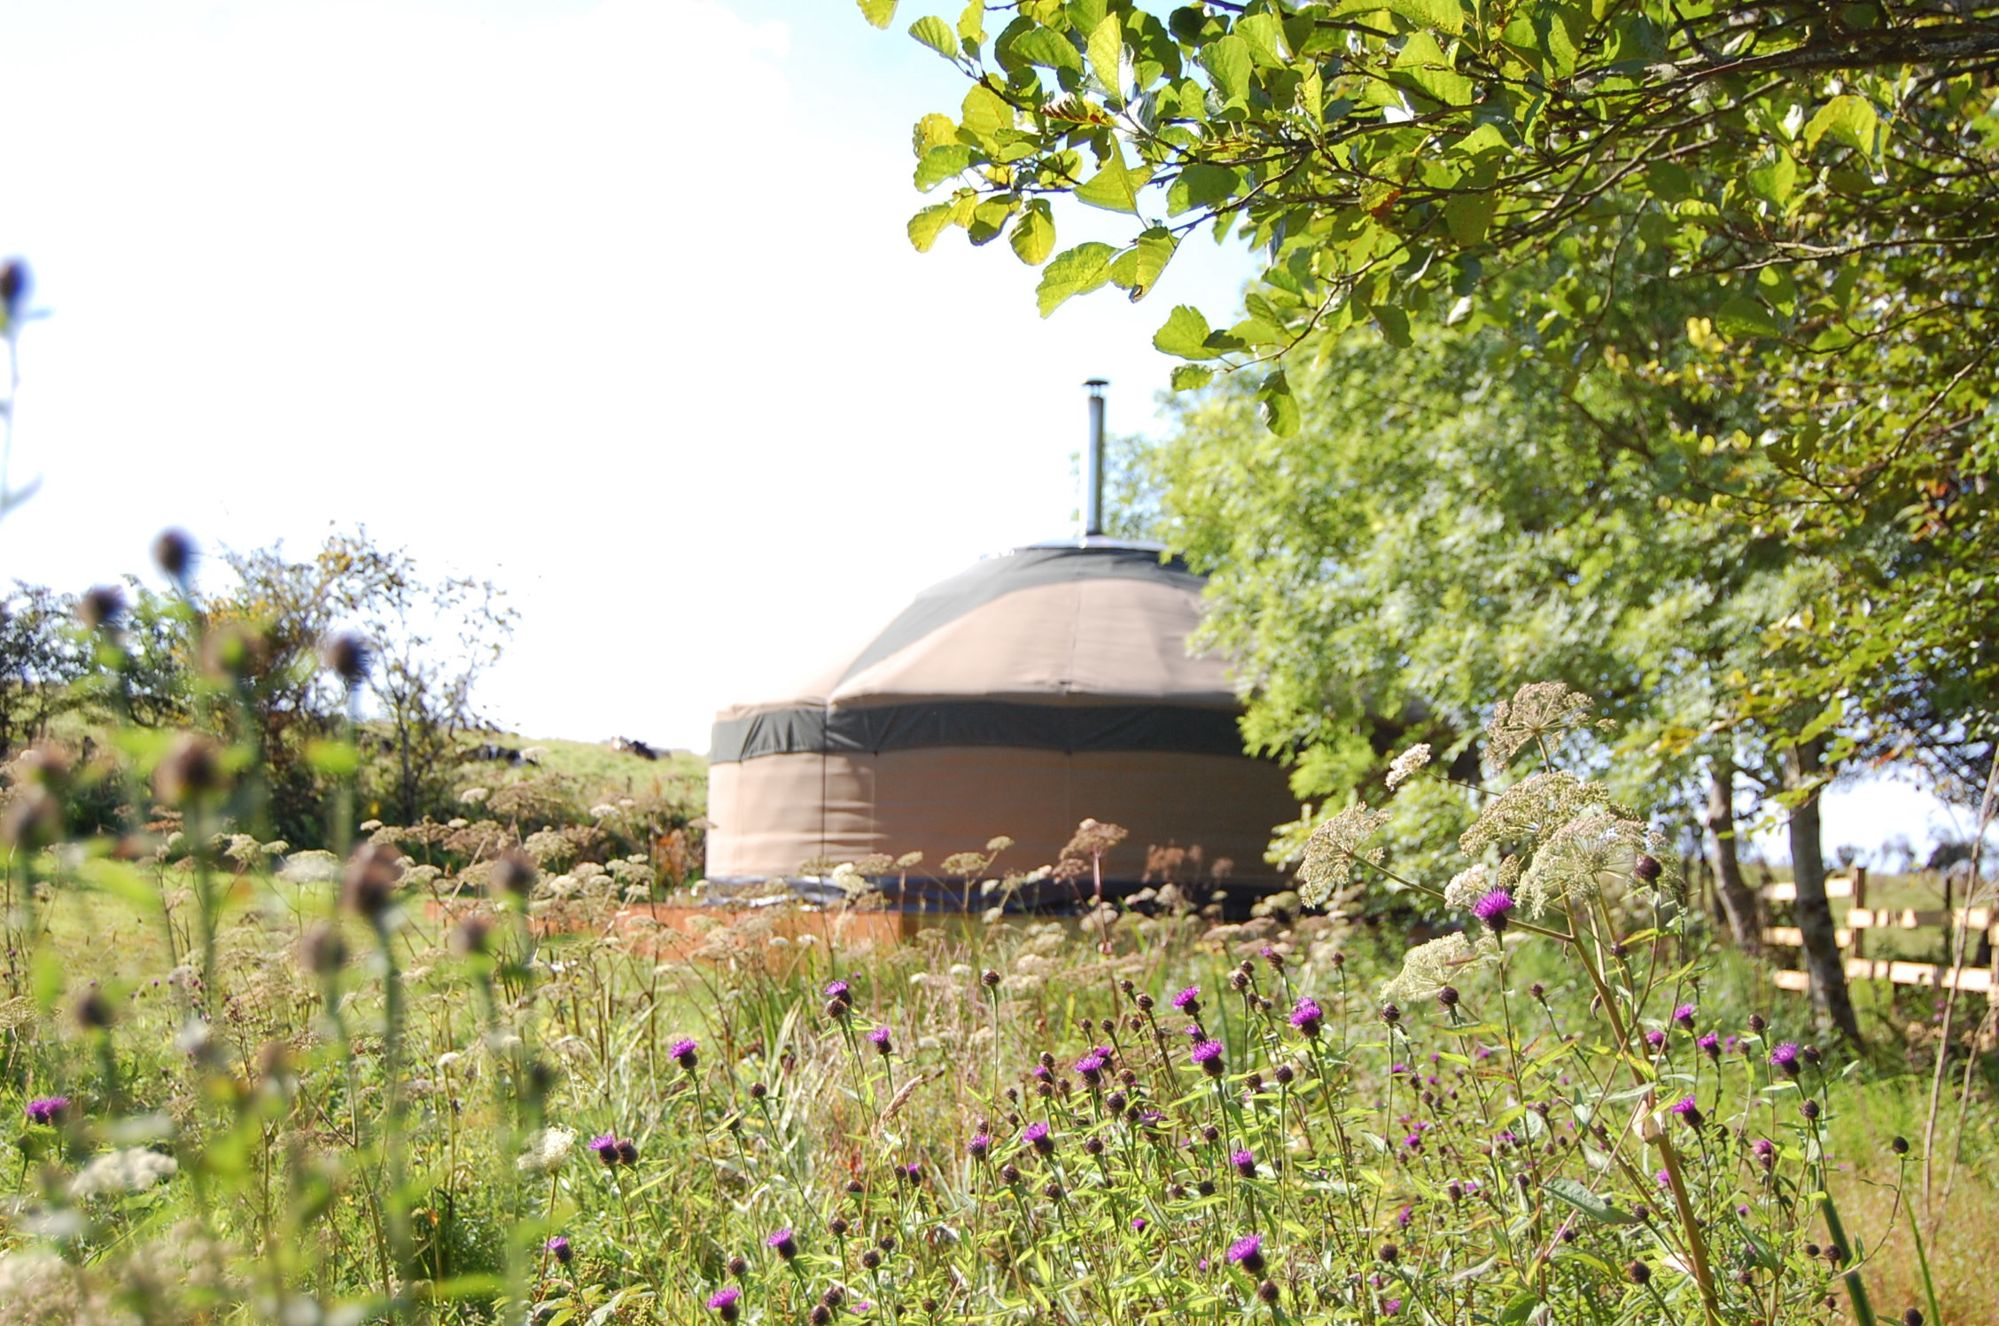 Our Yurts are set in a young orchard